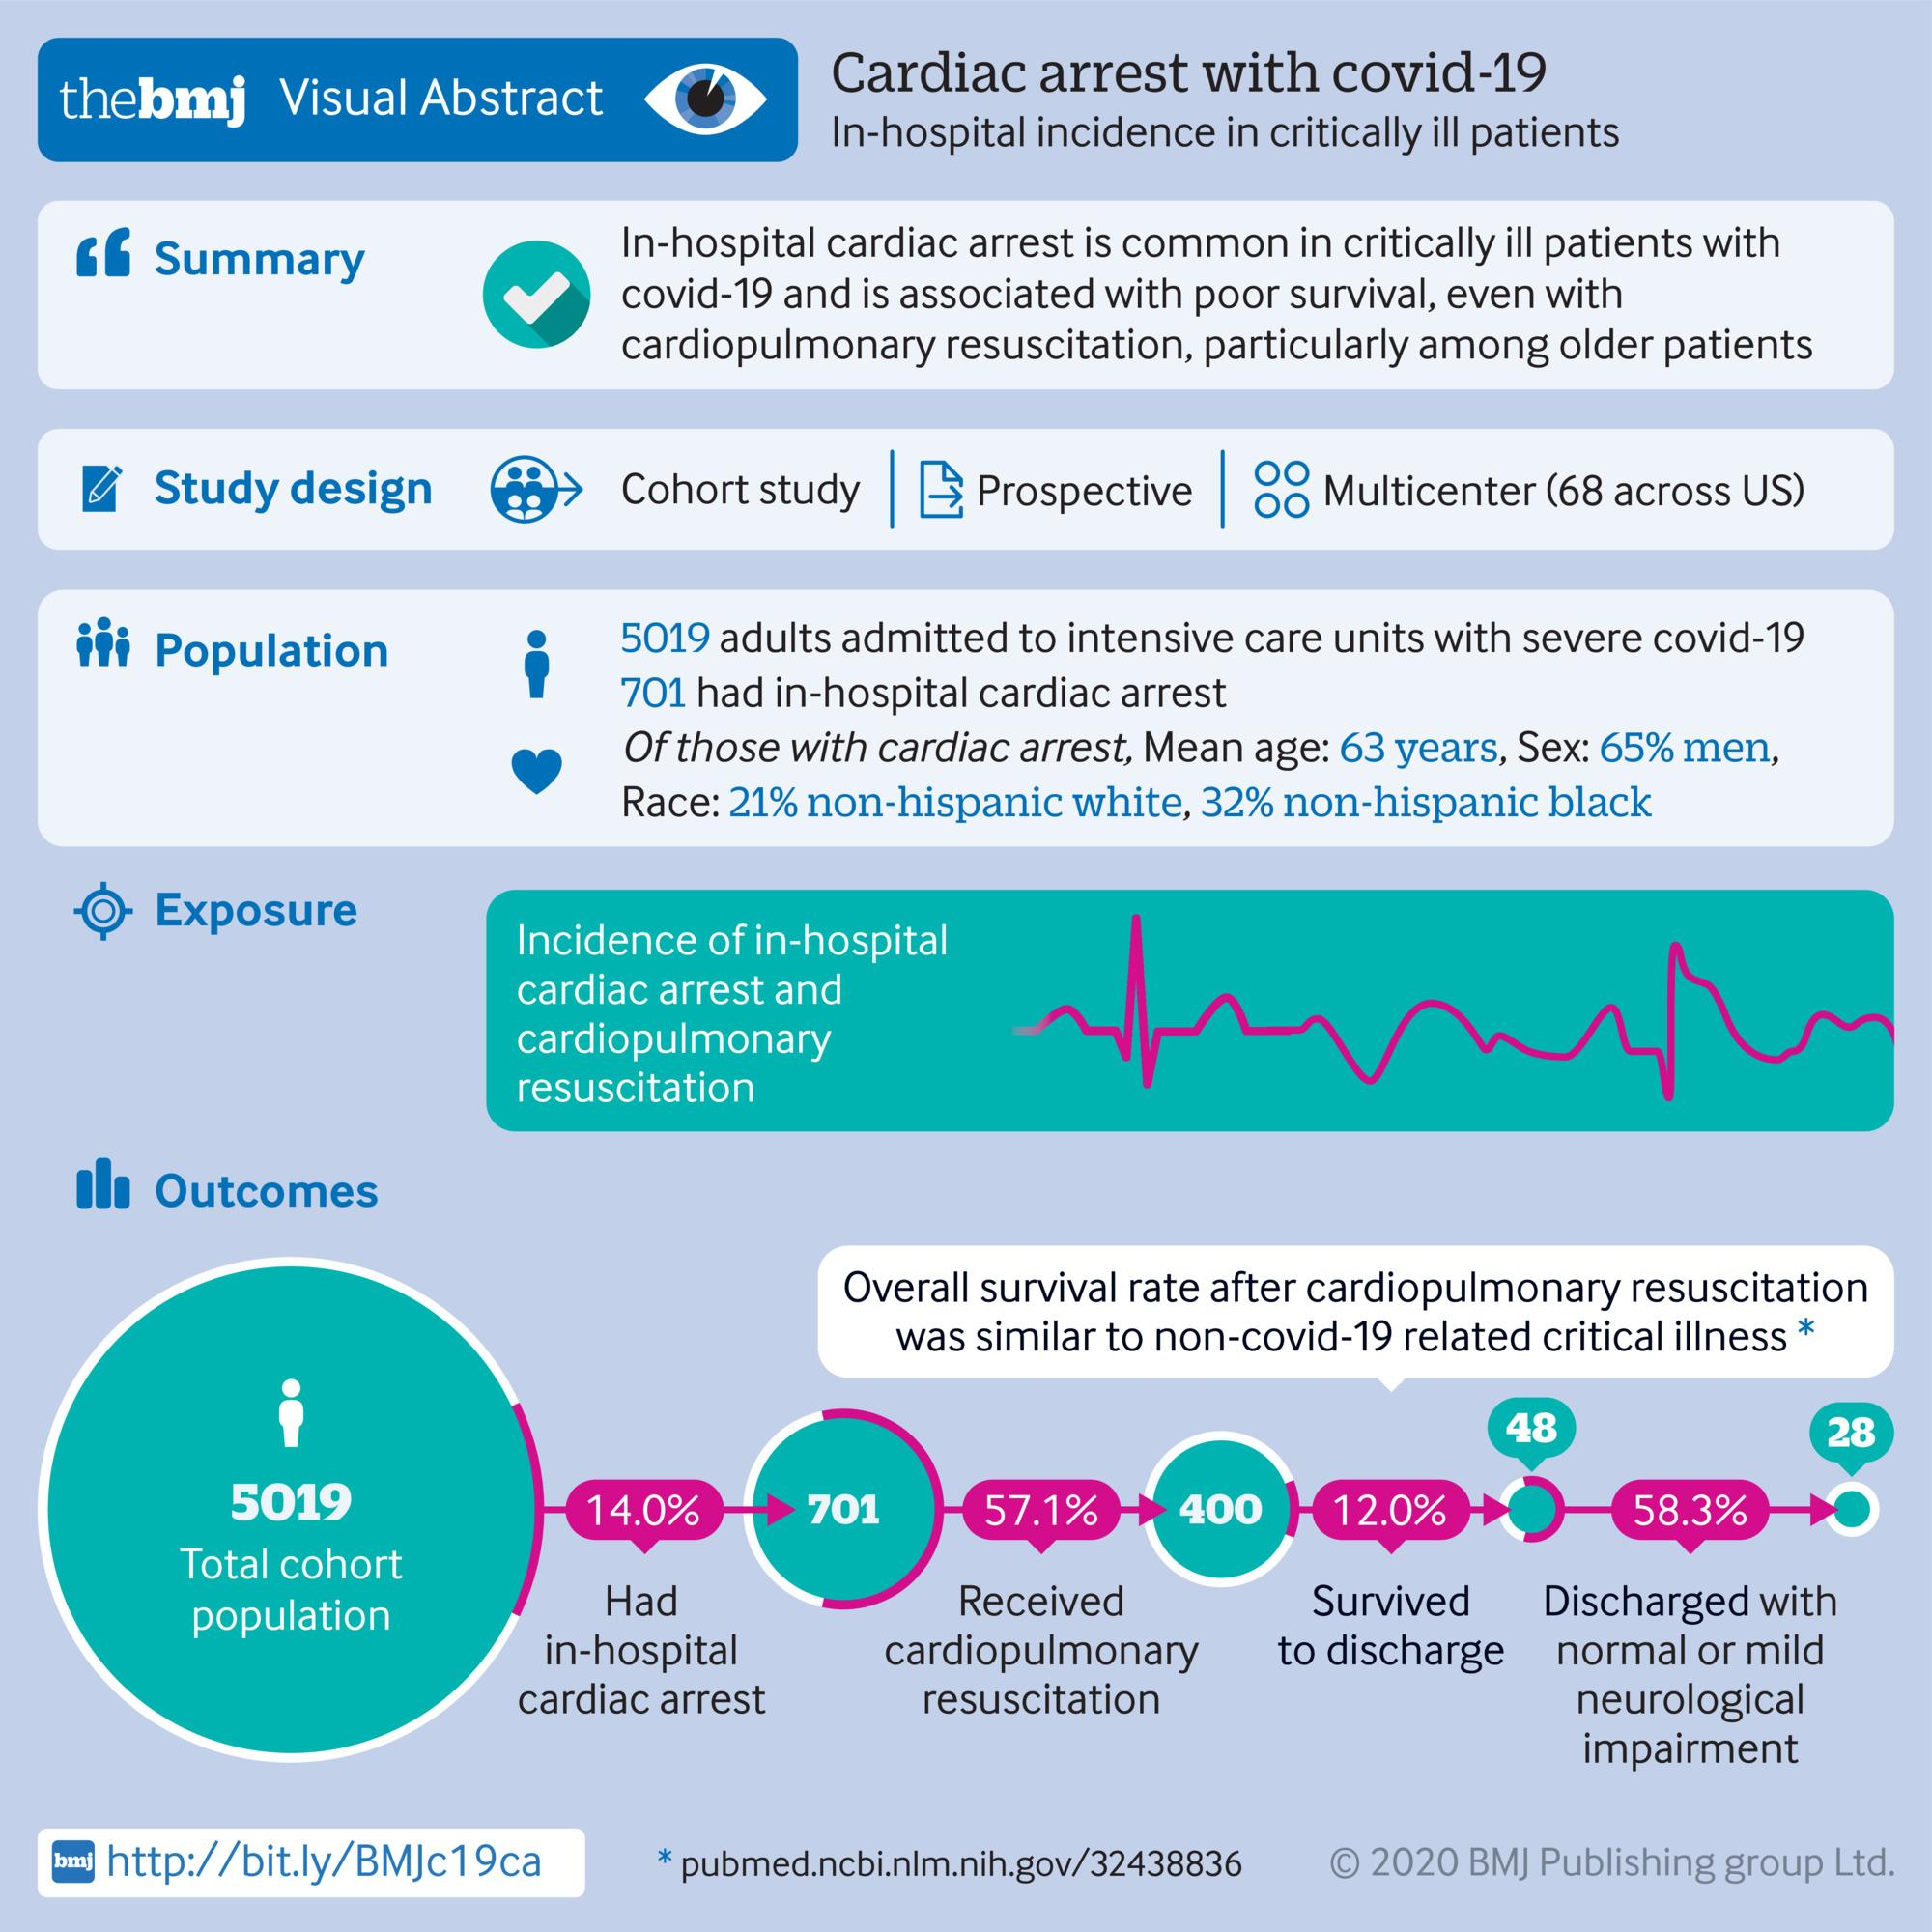 Cardiac arrest with covid-19: In-hospital incidence in critically ill patients